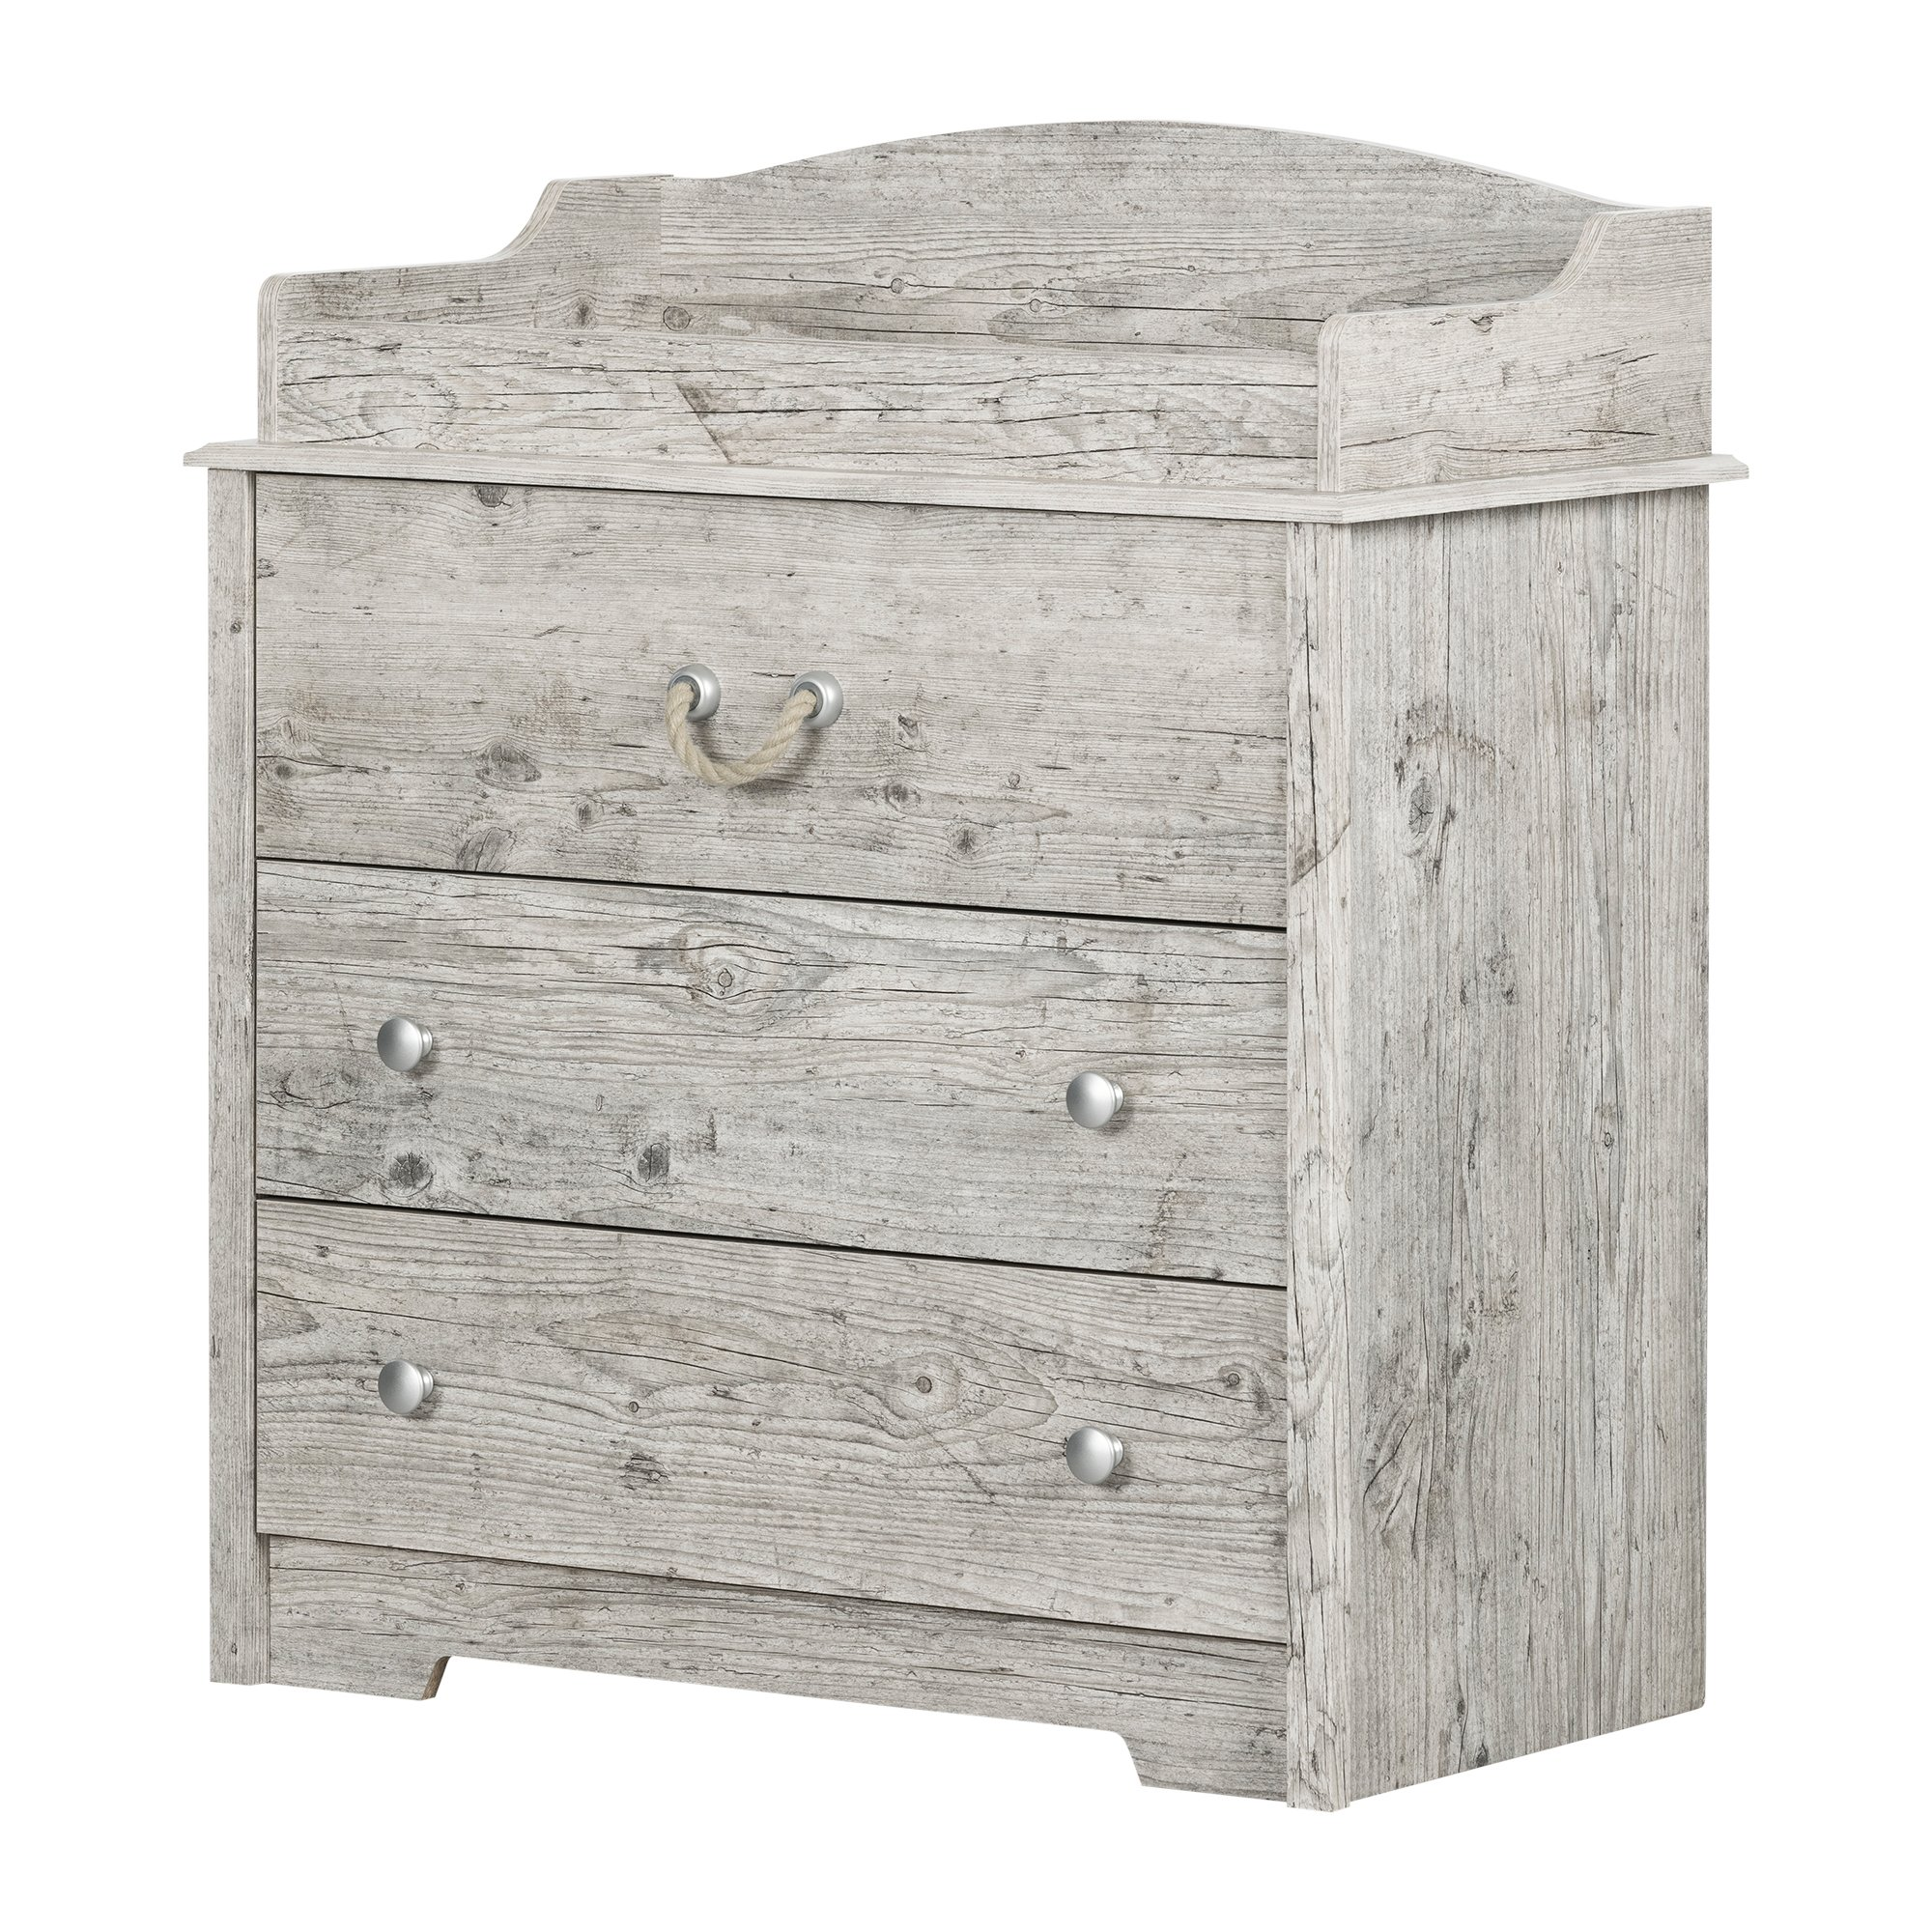 South Shore 11894 Aviron Changing Table with Drawers, Seaside Pine by South Shore